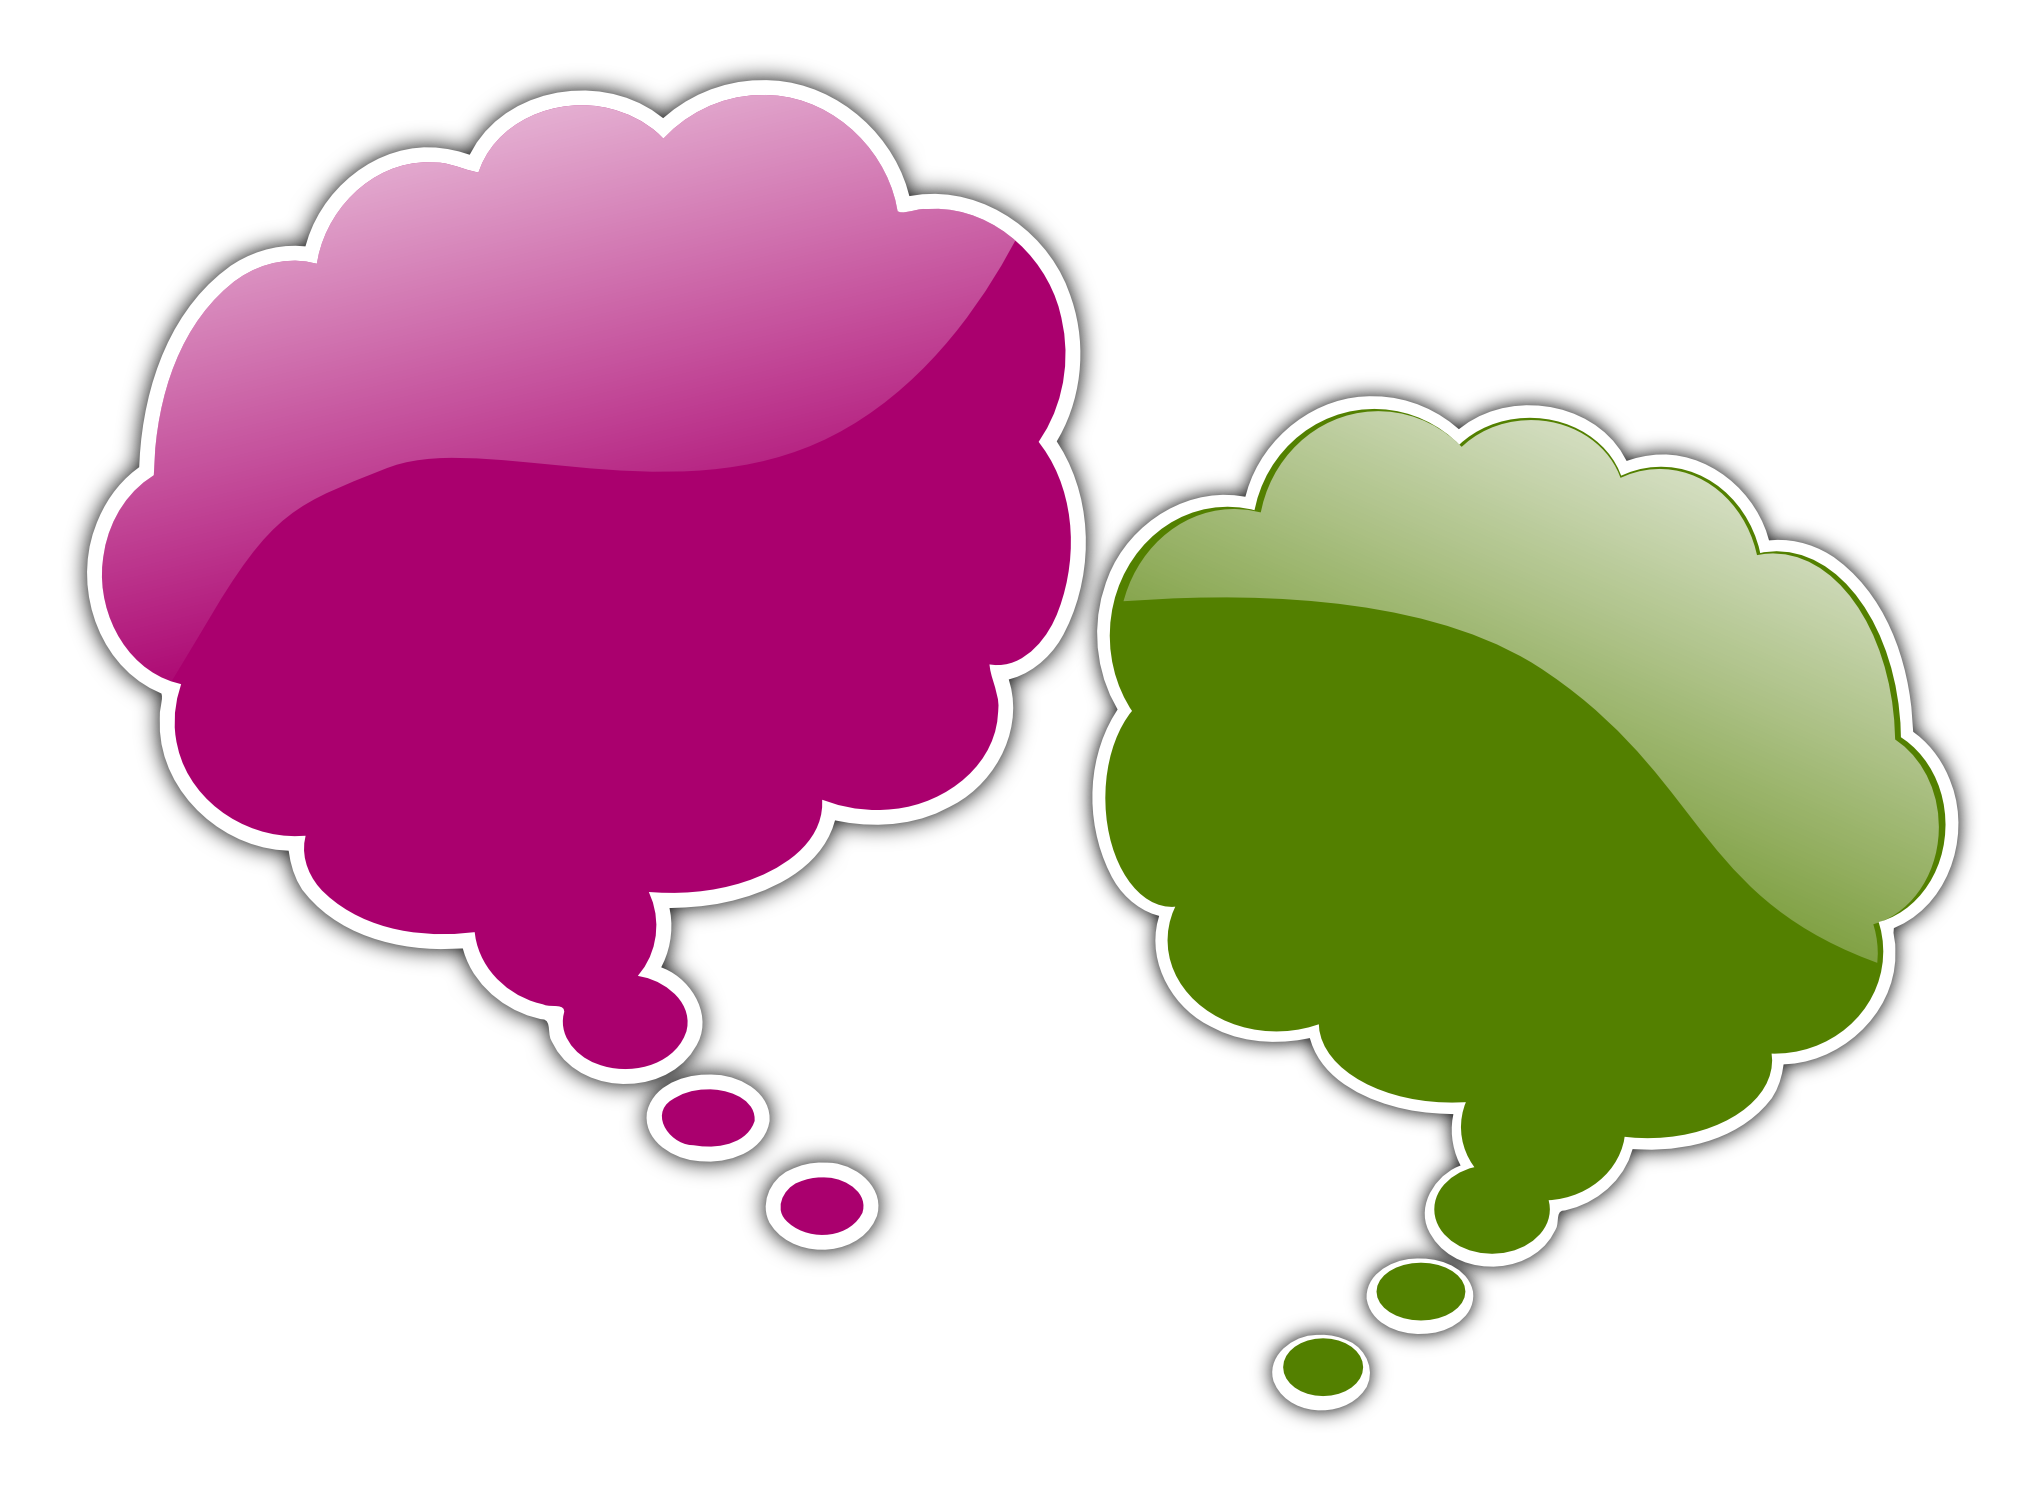 thought bubble png image pngpix #30891